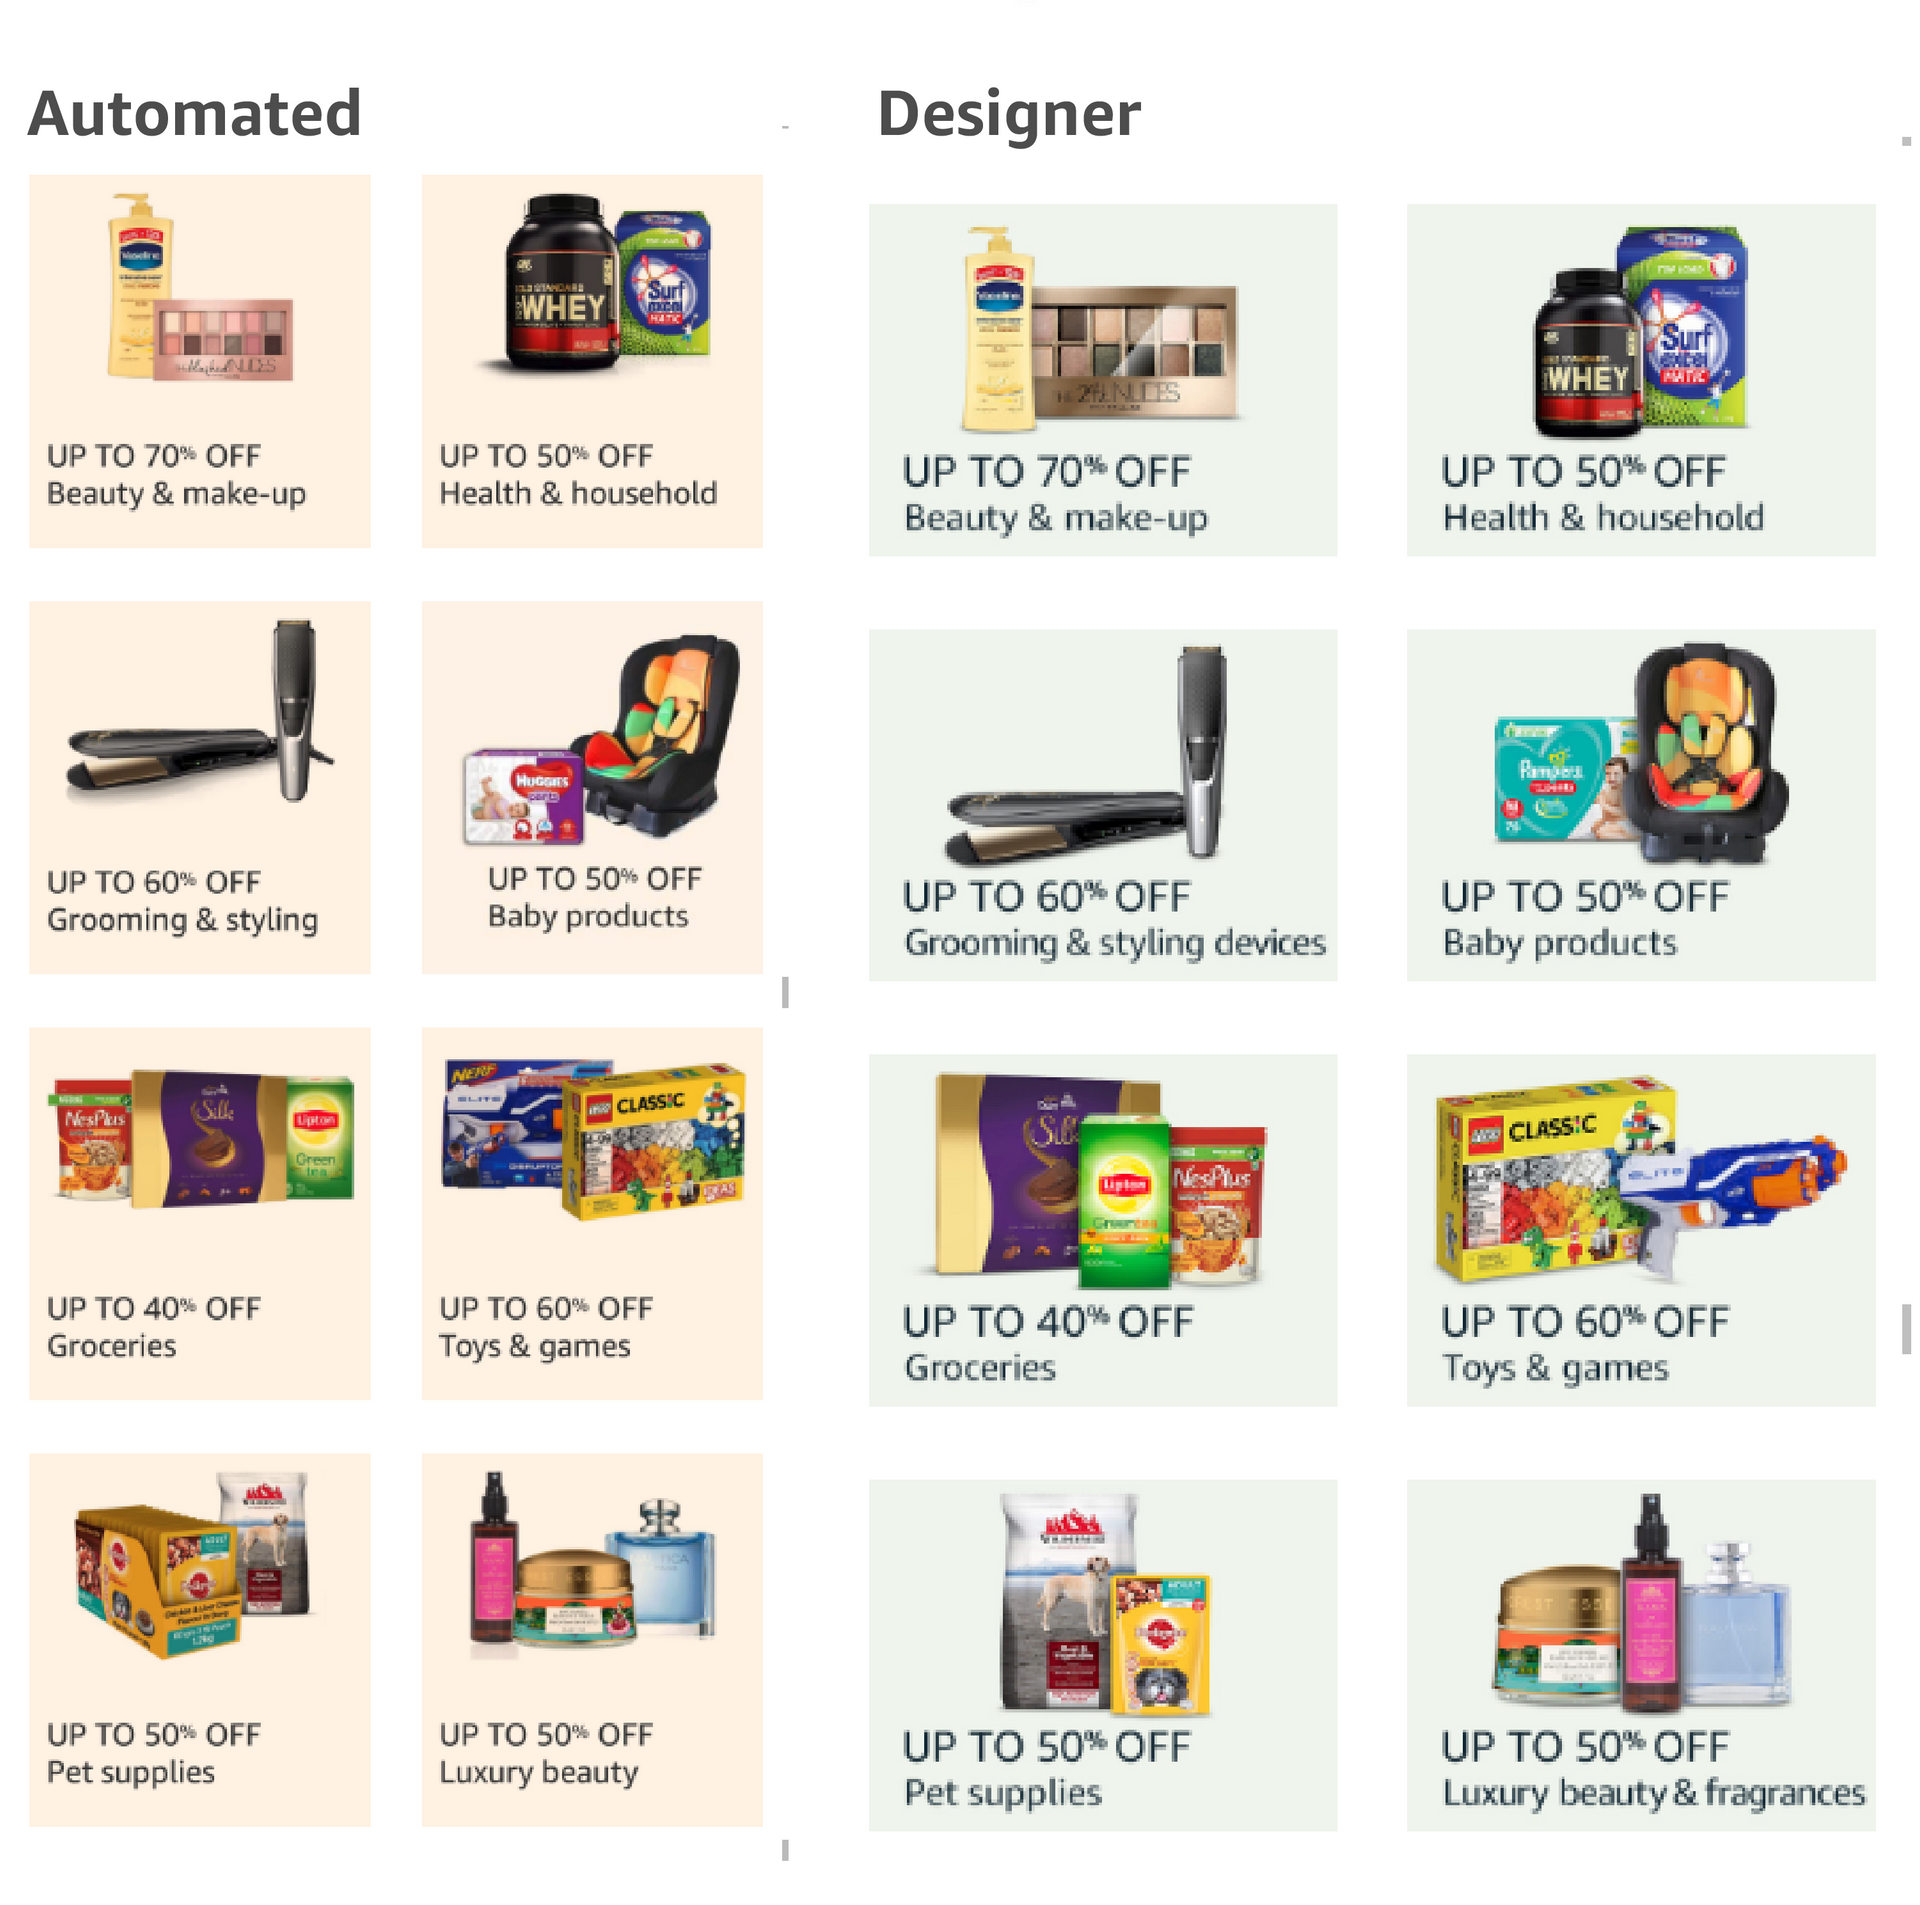 Automated vs designer created event pages | Jan ART 2019